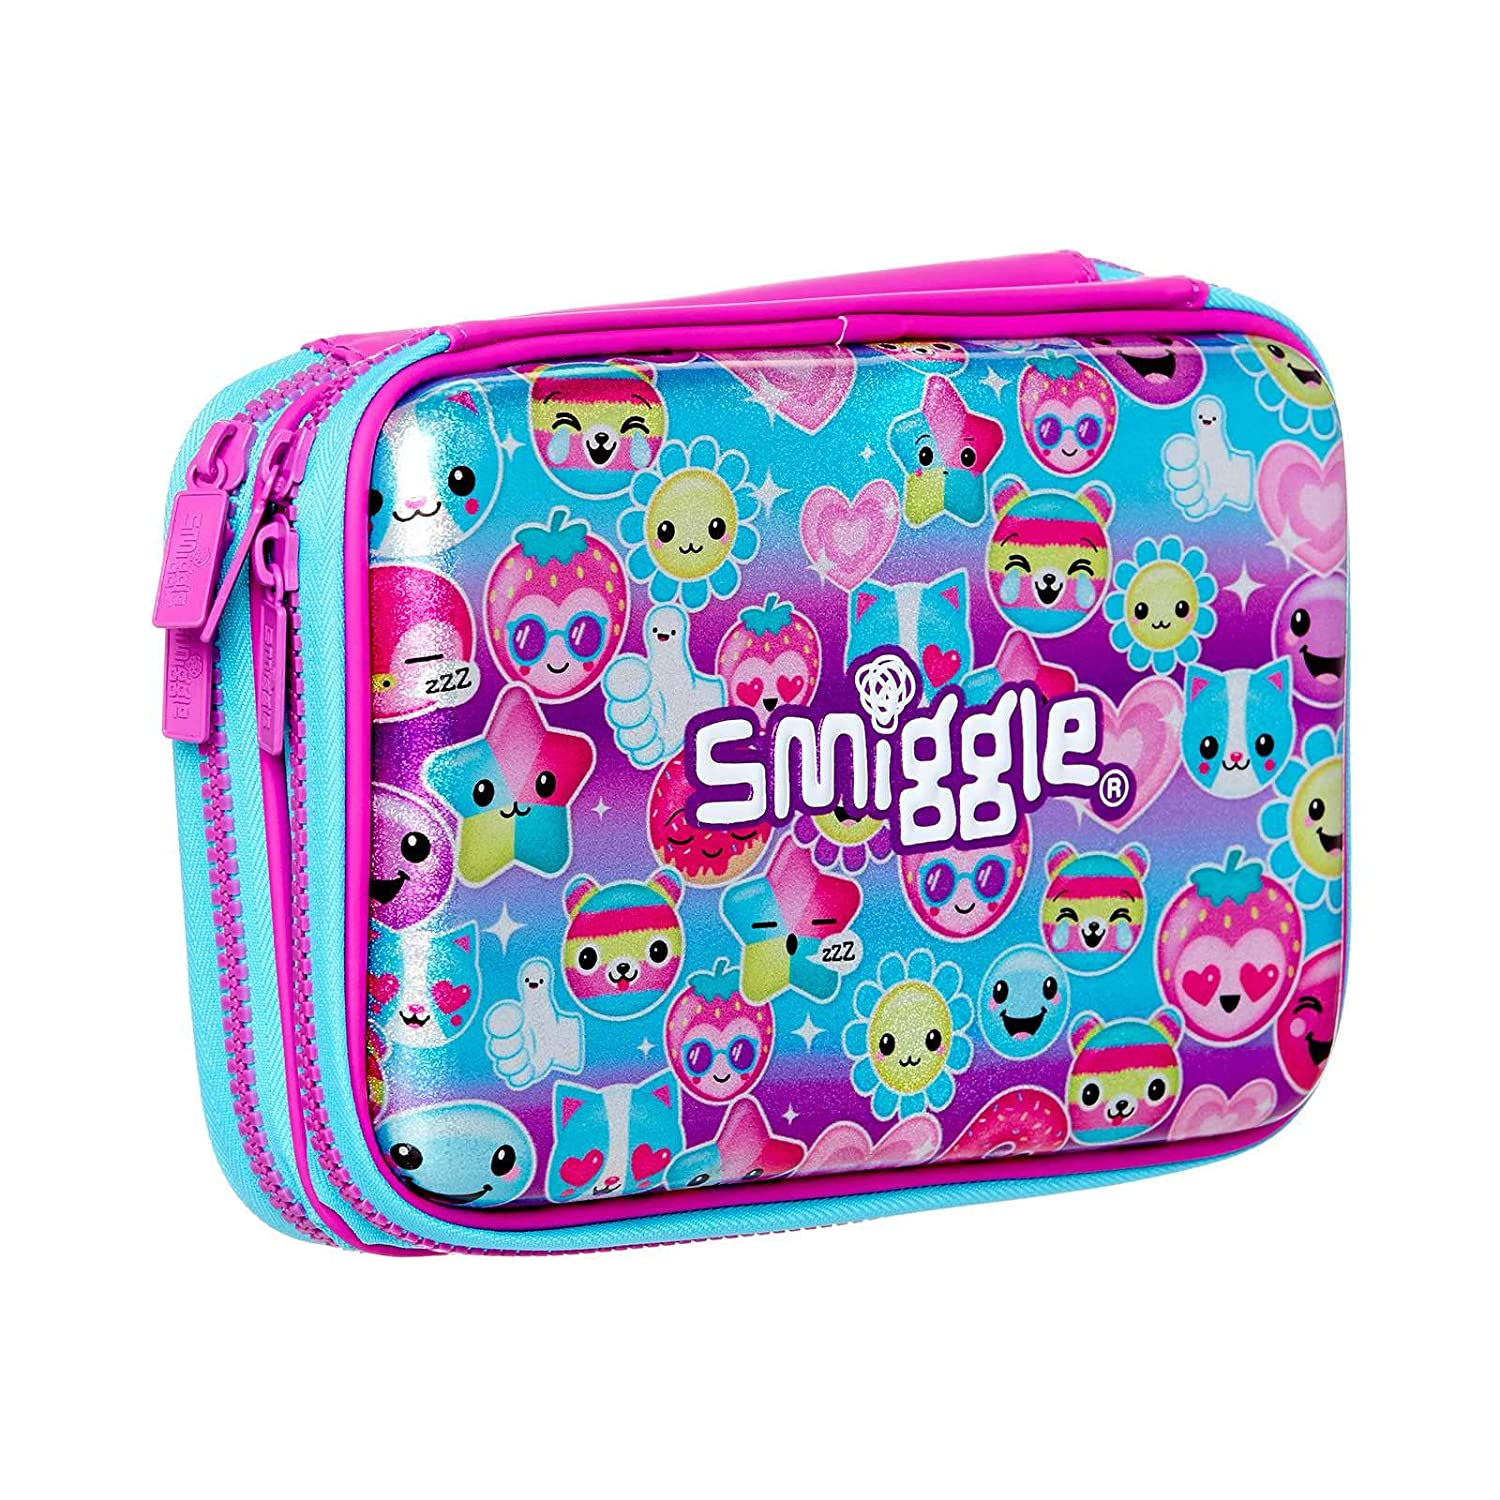 Amazon.com: Smiggle Says - Estuche rígido para lápices ...